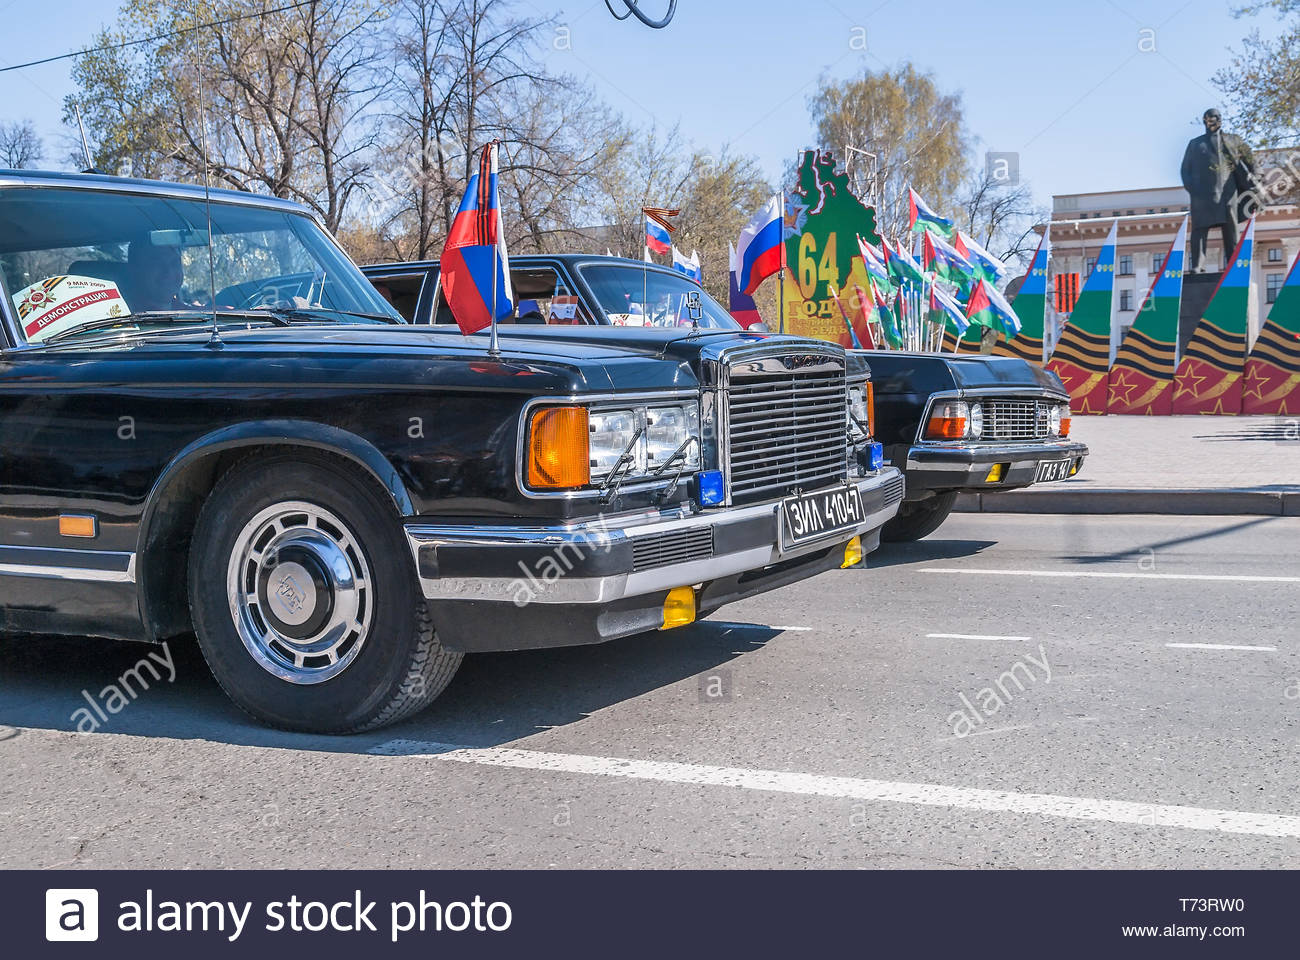 Tyumen Russia May Parade Of Victory Day In Tyumen Soviet Luxury Cars Zil And Gaz Chaika Against Lenin Monument On Central Square T Rw on Zil Russian Car 1980